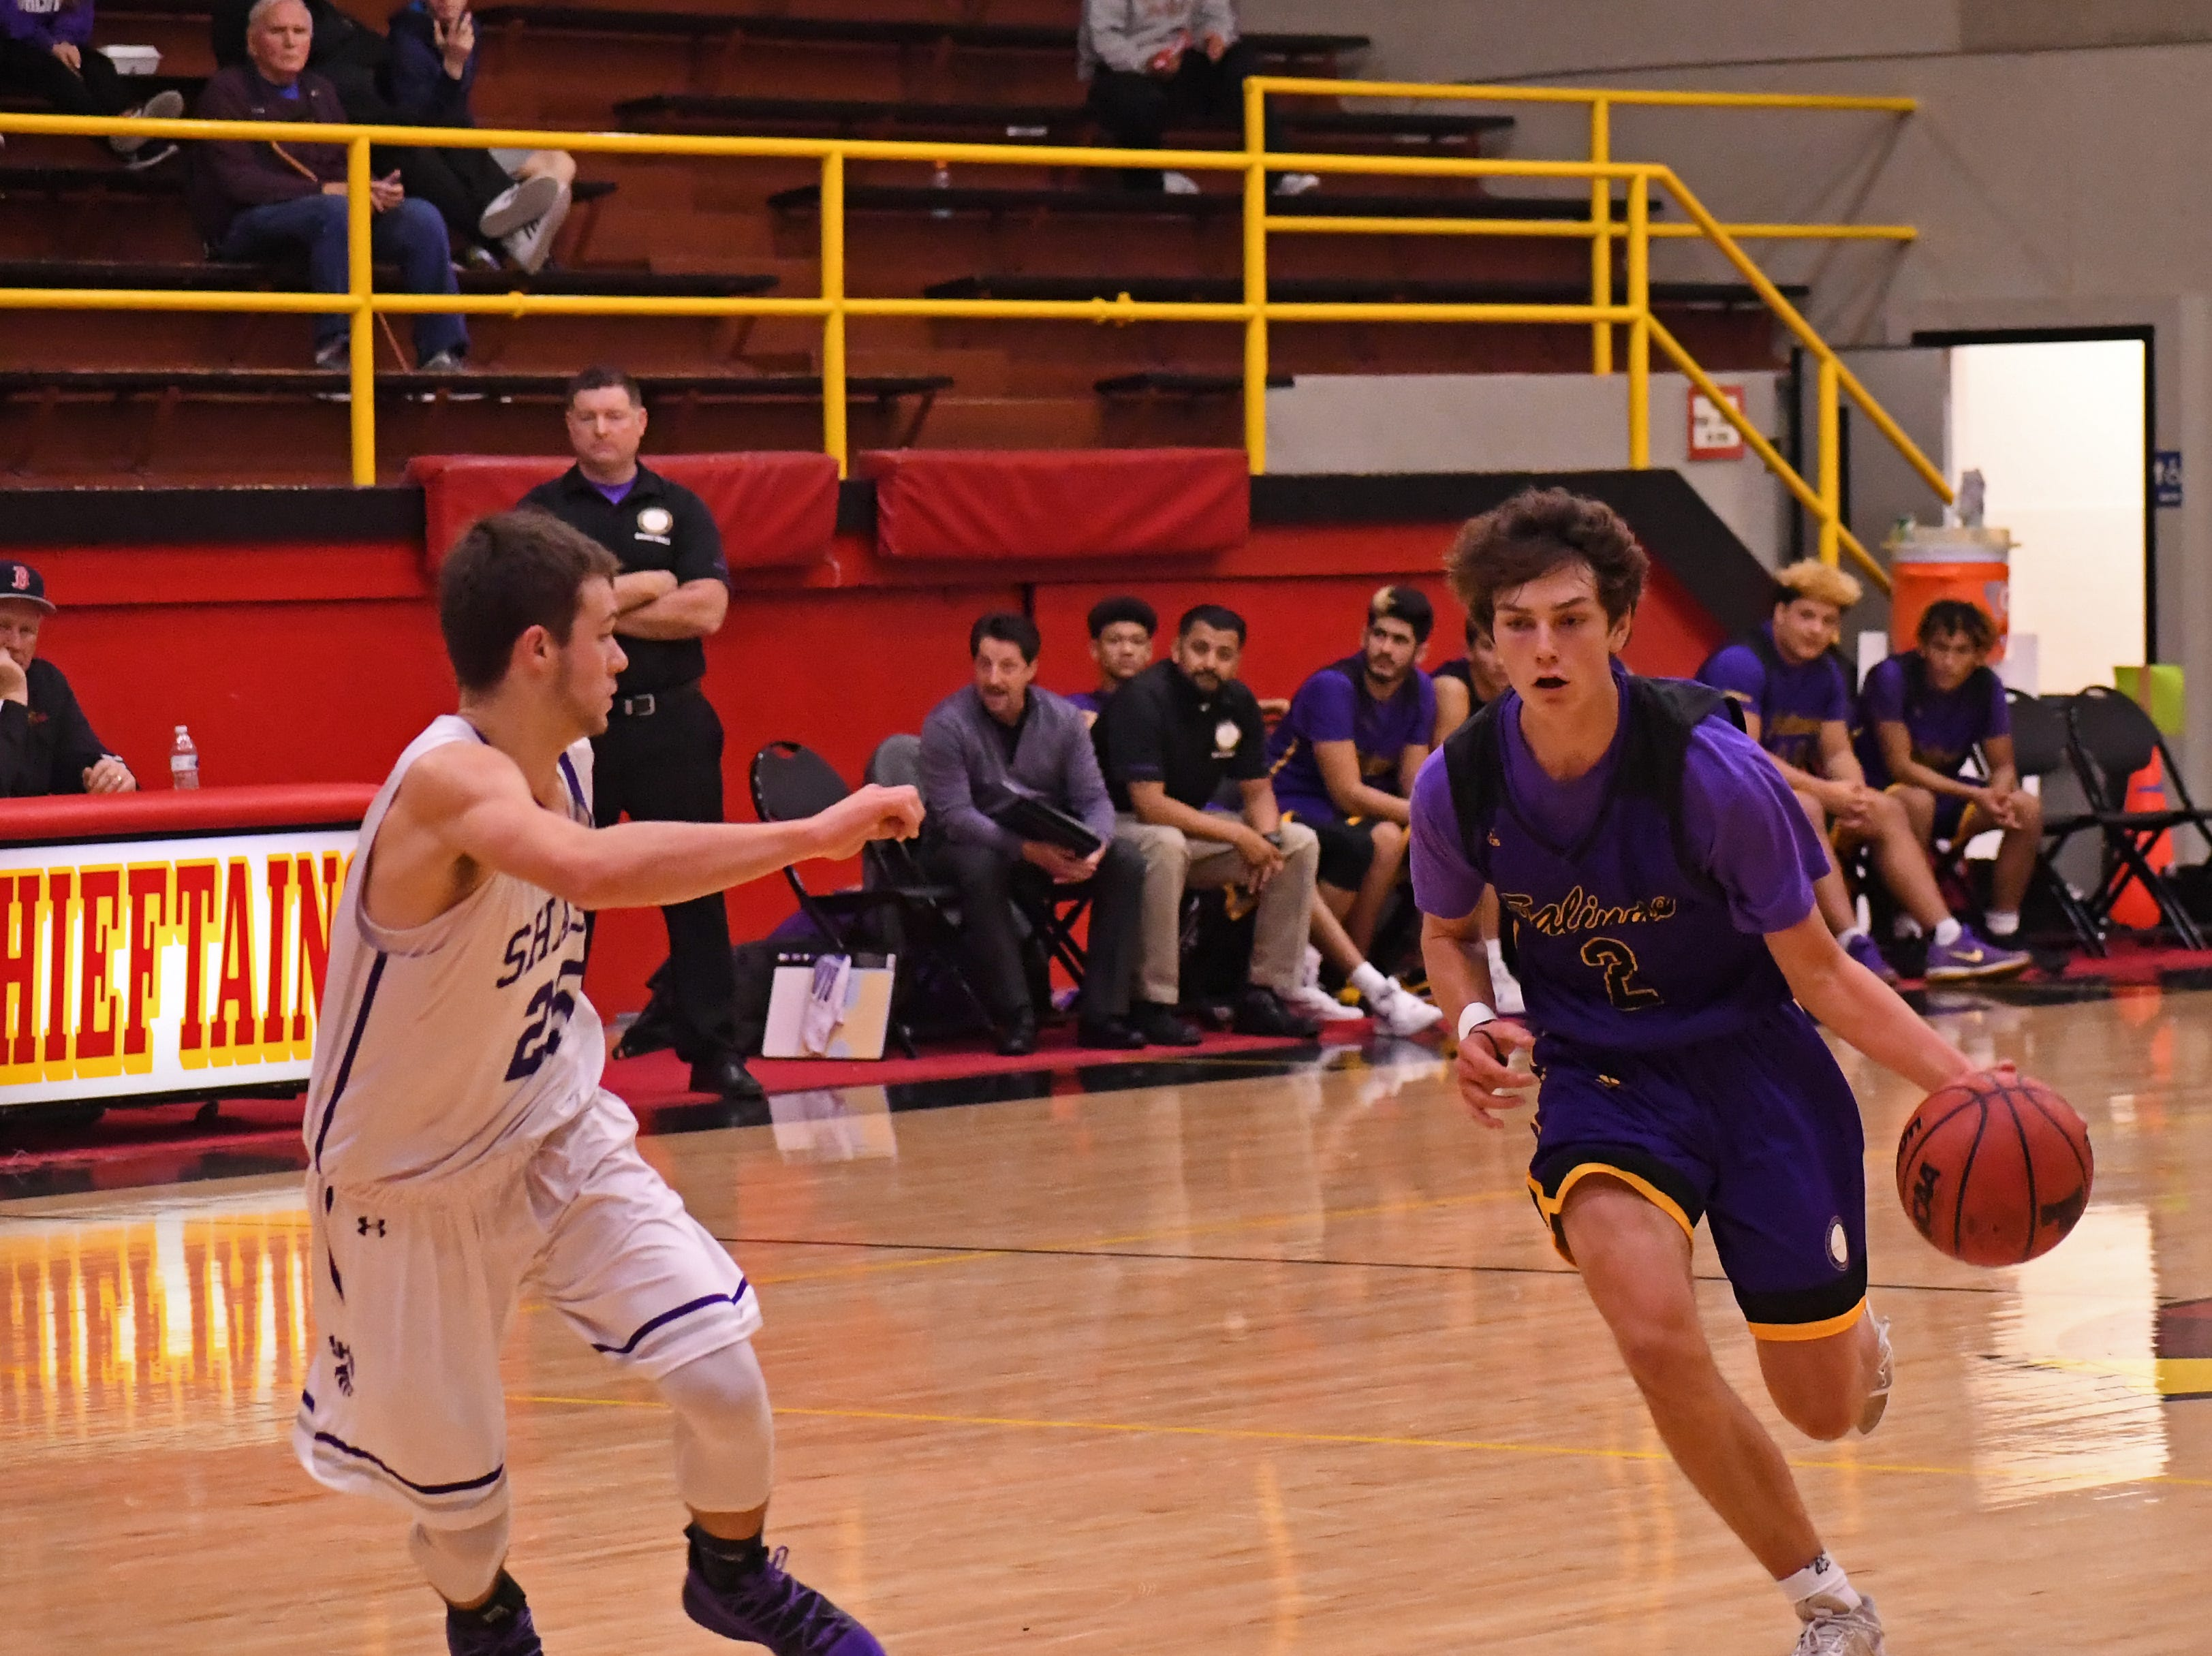 Salinas guard Parker Horton (2) drives to his left against a Shasta defender.